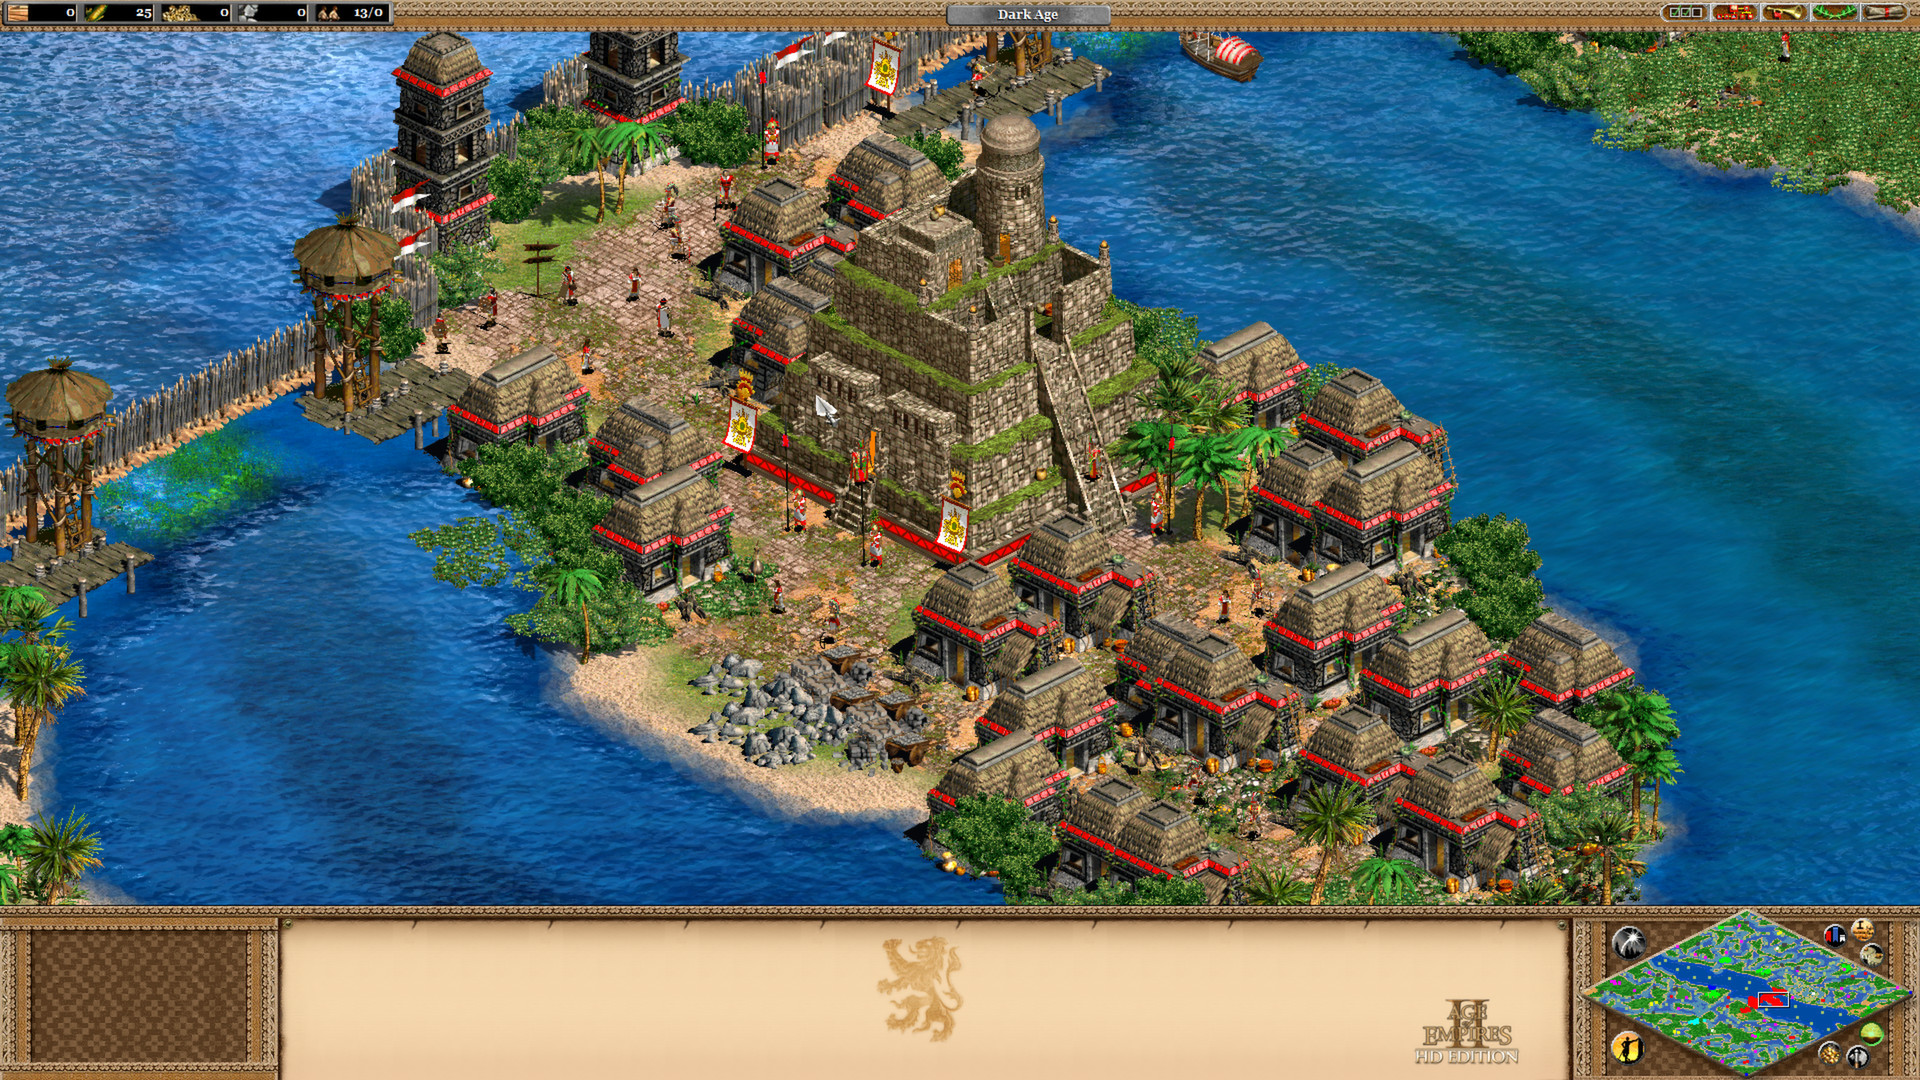 age of empires 2 hd how to change resolution